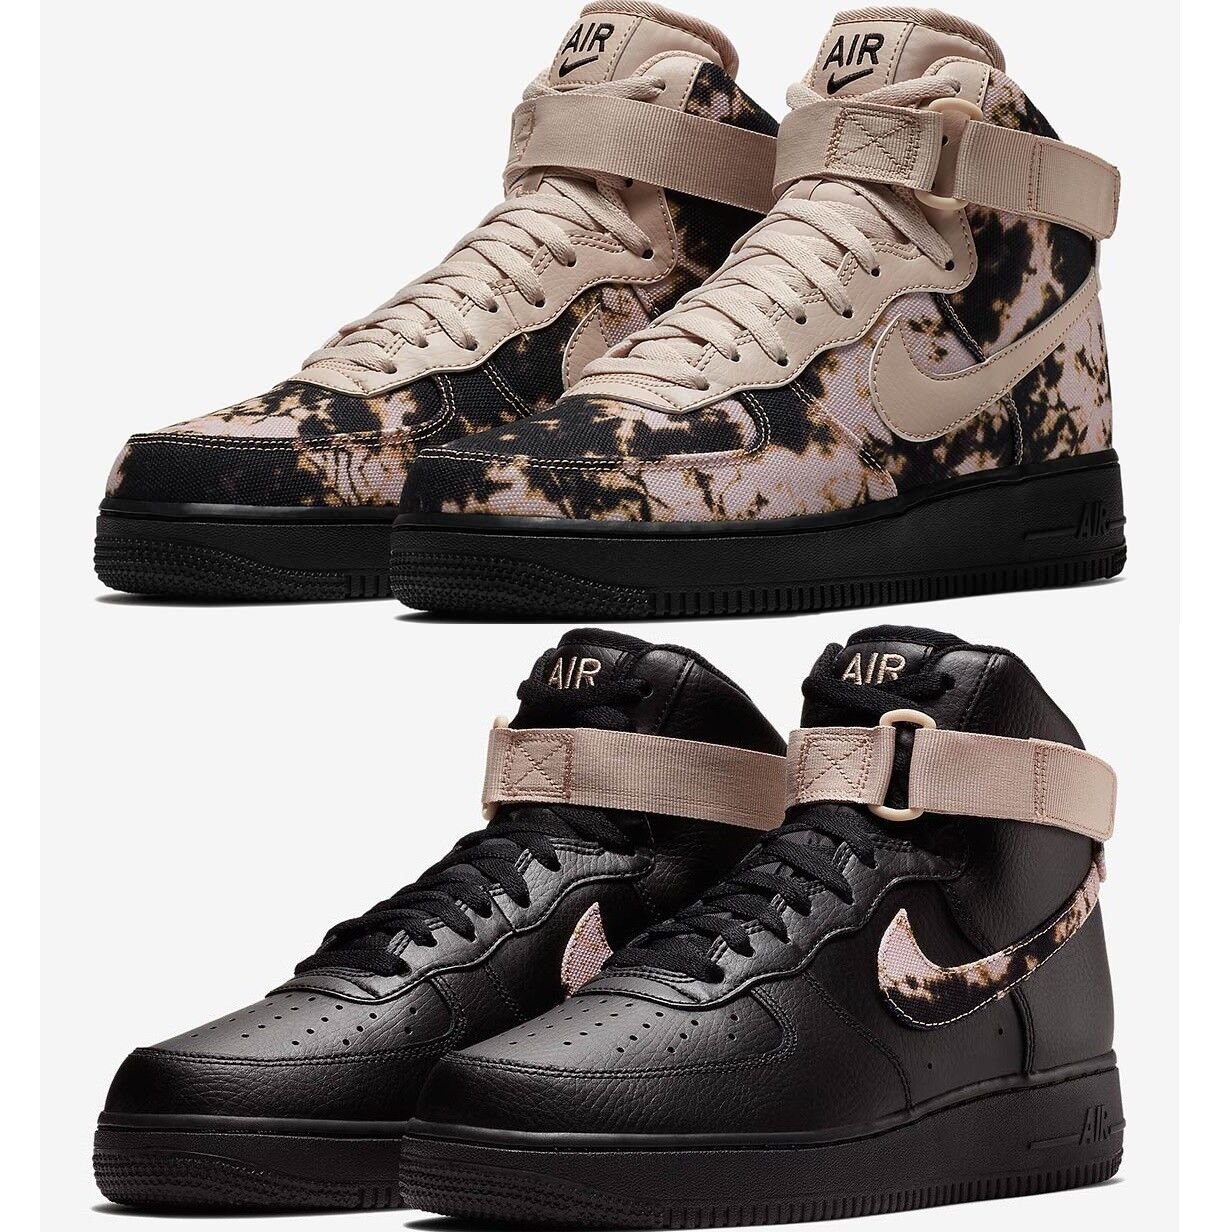 NIKE AIR FORCE 1 '07 HIGH Acid Wash Print MEN'S COMFY SHOES LIFESTYLE SNEAKERS Particle Beige/Particle Beige/...,Black/Particle Beige/Particle ...